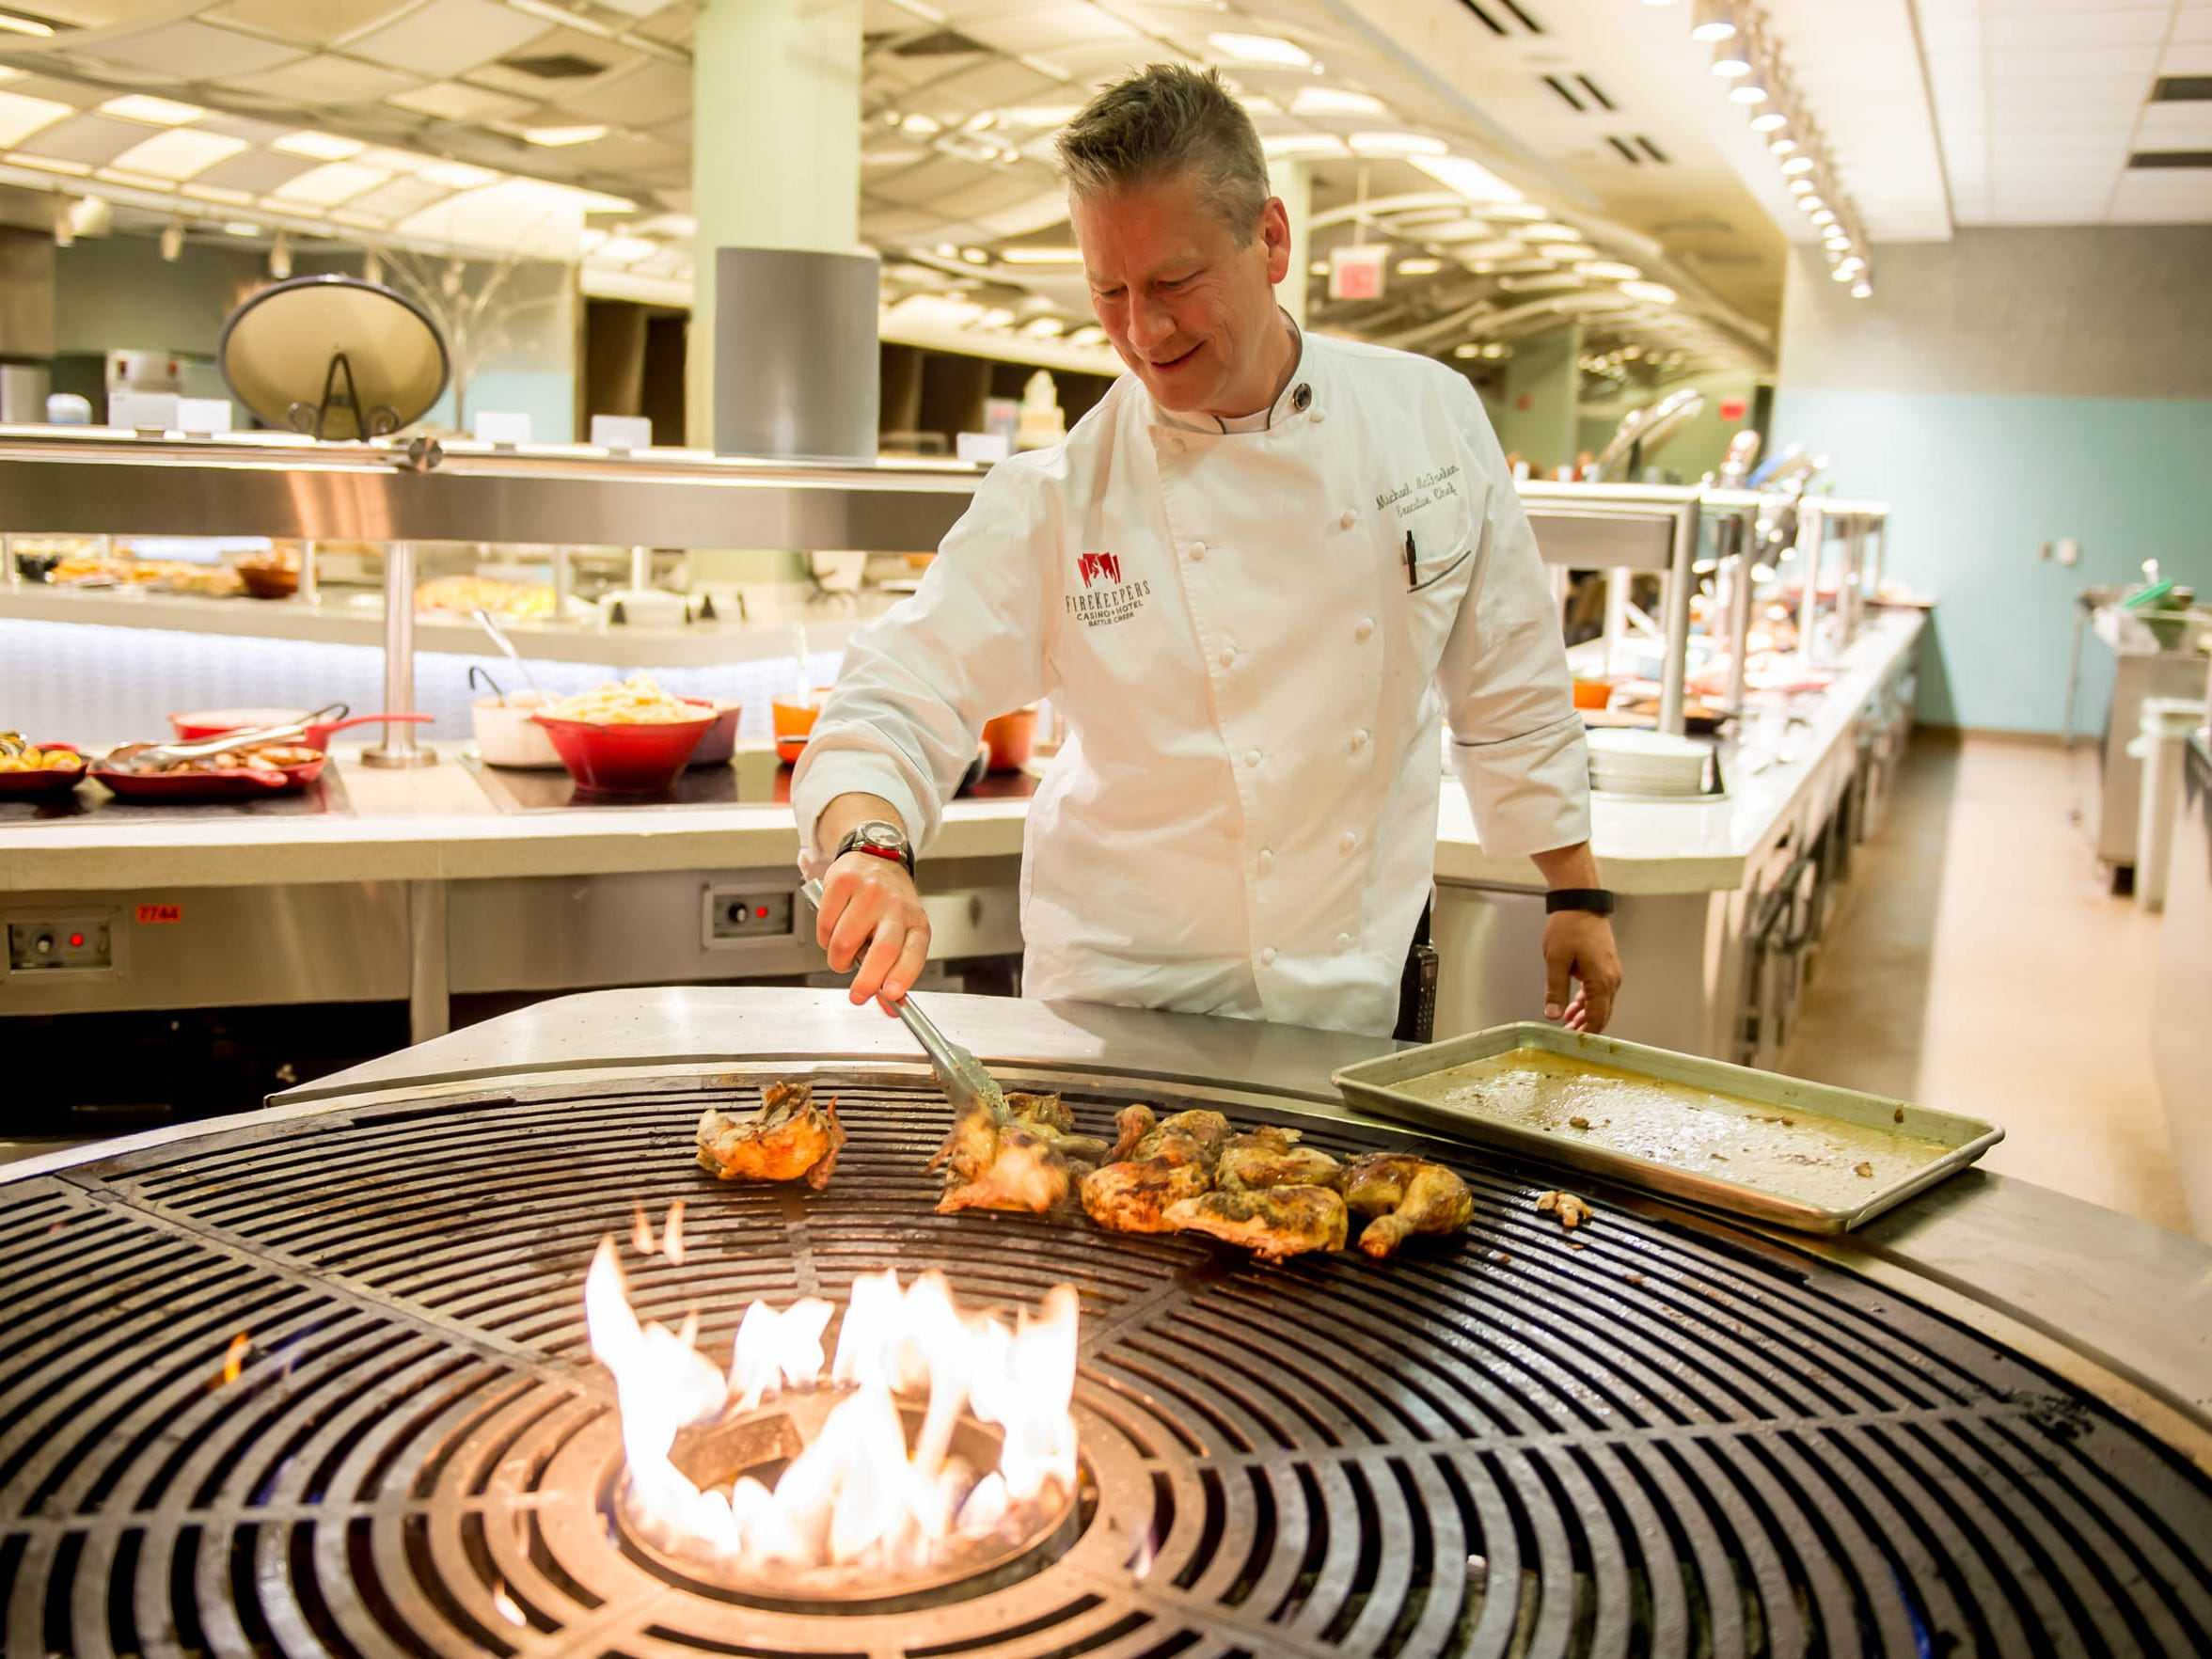 Mike McFarlen, executive chef at the FireKeepers Casino and Hotel, is one of five nominees for the Governor's Service Award Volunteer of the Year.